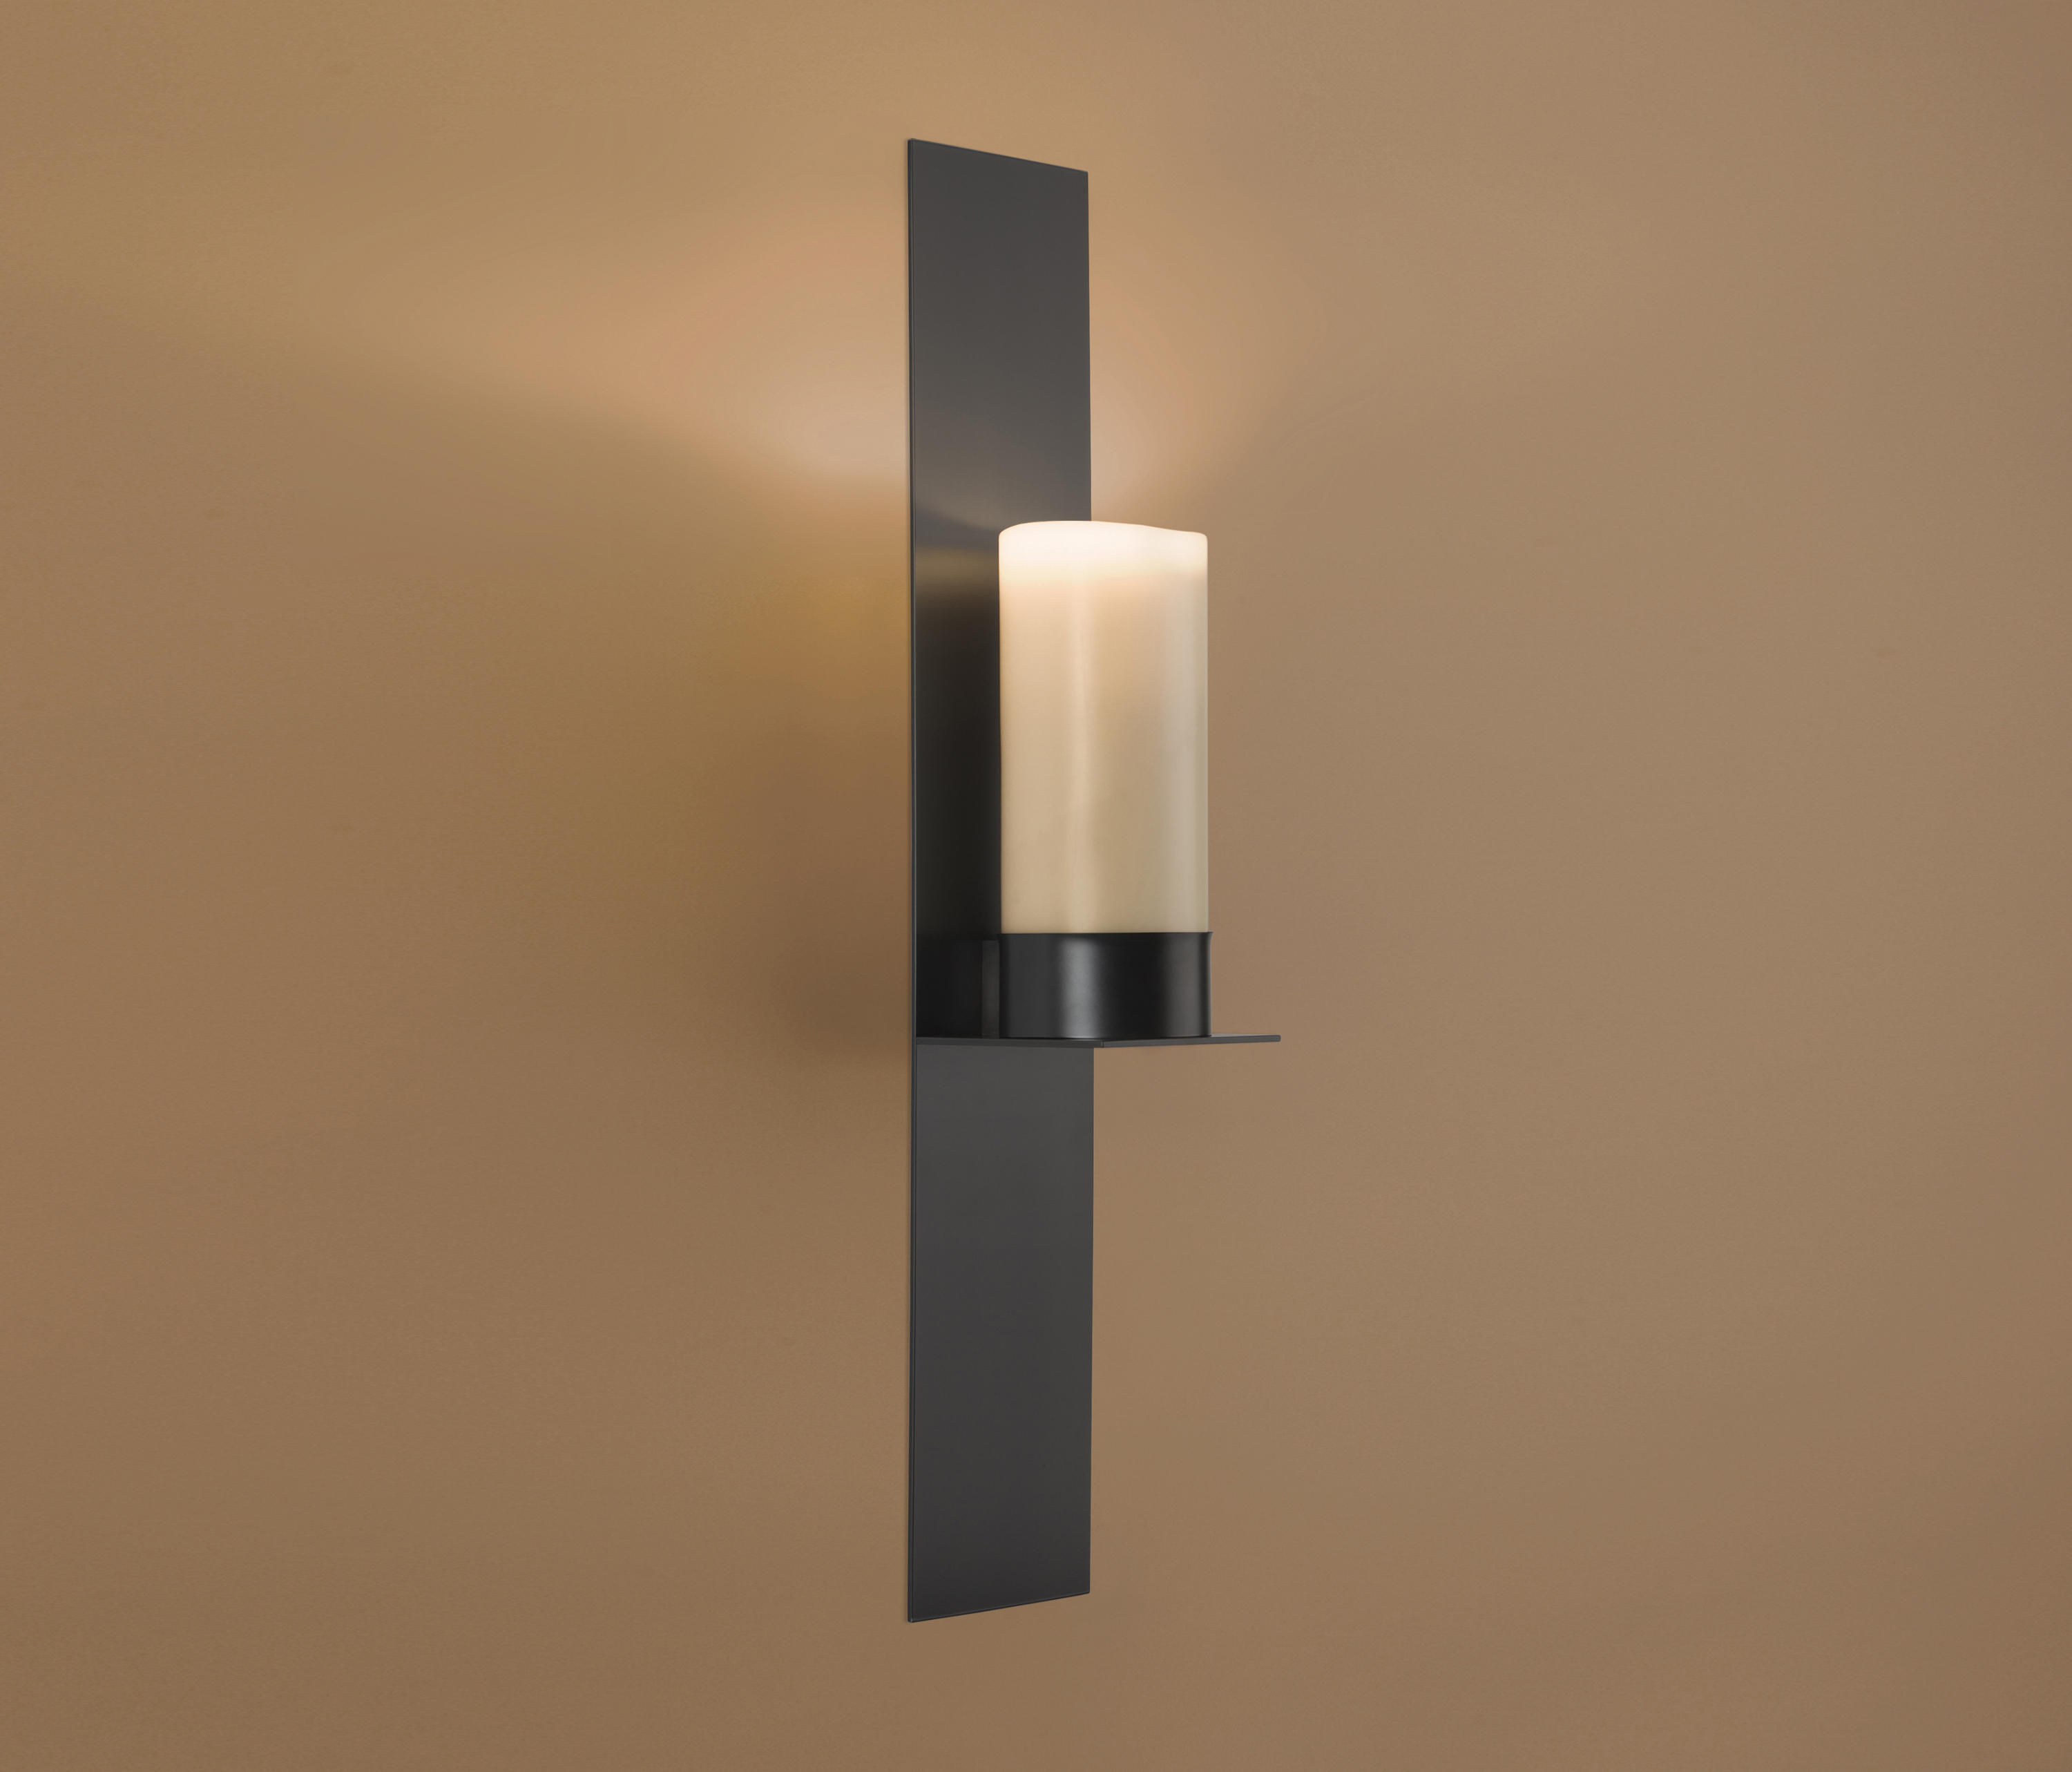 ... Timmeren by Kevin Reilly Collection | General lighting ... & TIMMEREN - General lighting from Kevin Reilly Collection | Architonic azcodes.com